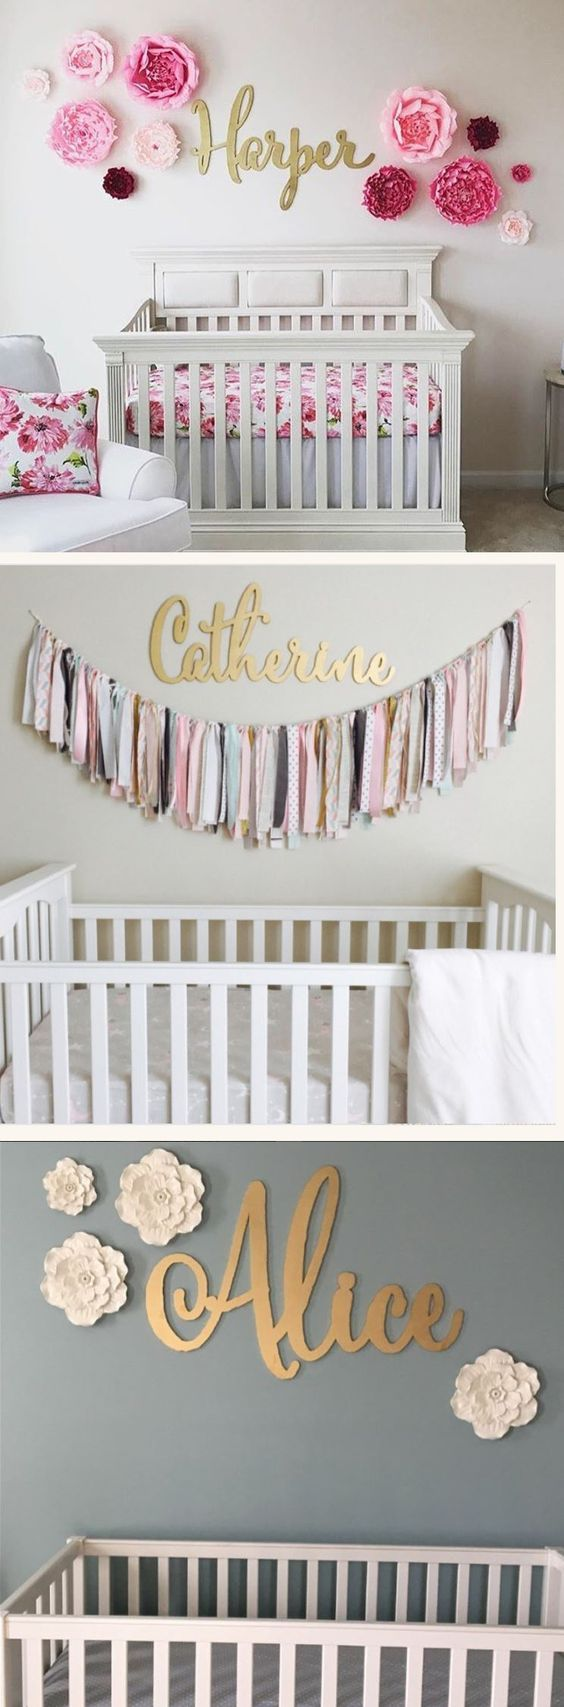 Gorgeous Nursery Room Decoration Custom Gold Name Signs The Perfect Touch